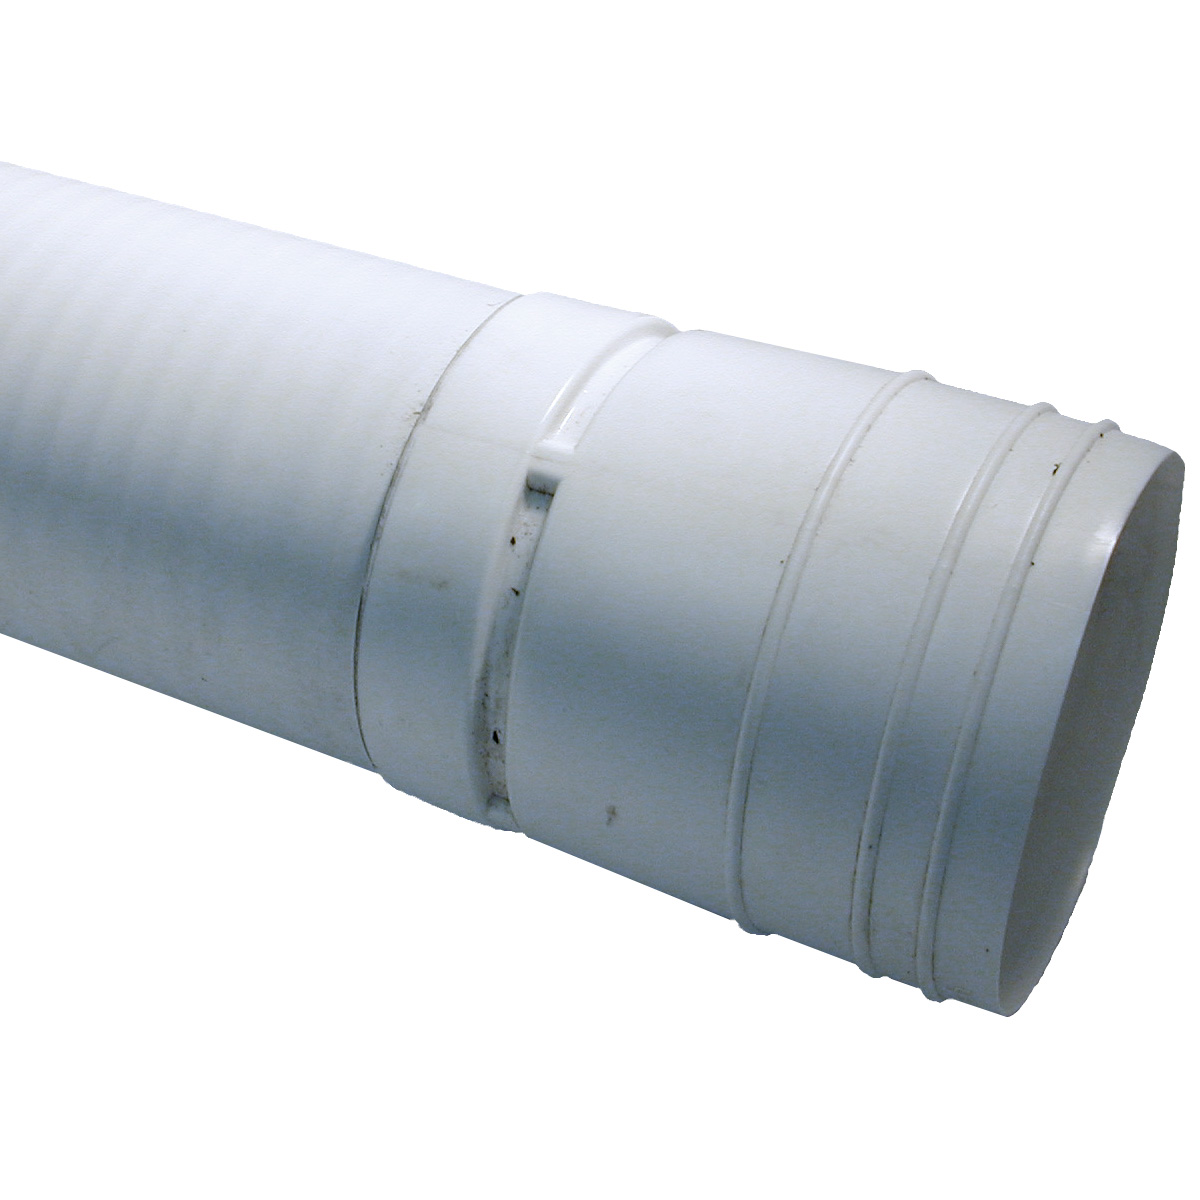 Solid Pipe – Styrene Triple Wall Wh